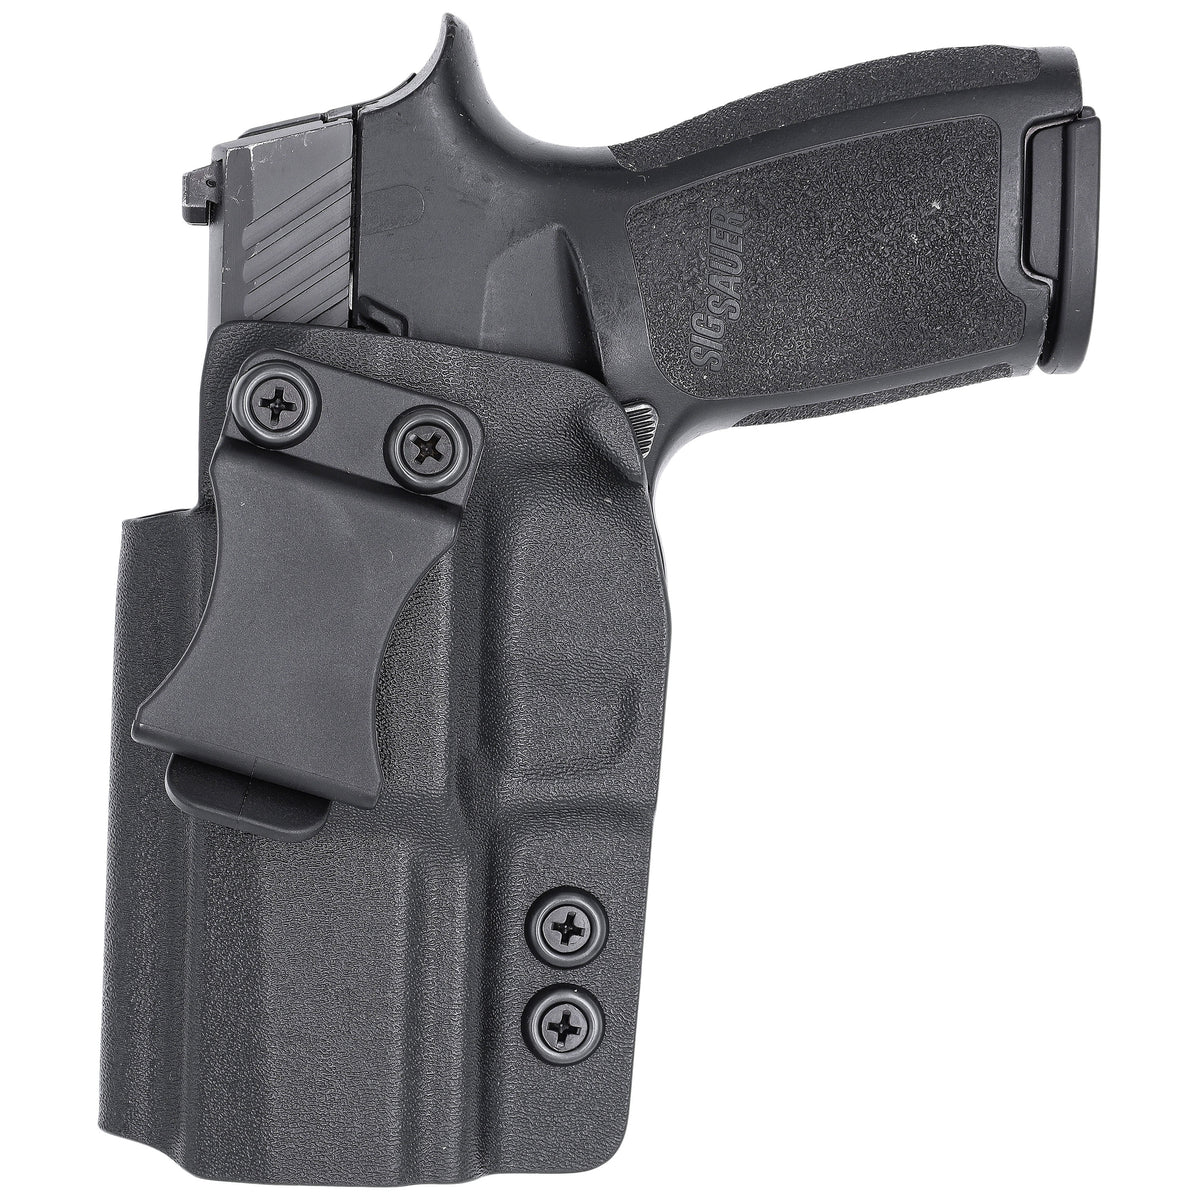 Sig Sauer IWB Optics Ready - Concealed Carry Holsters